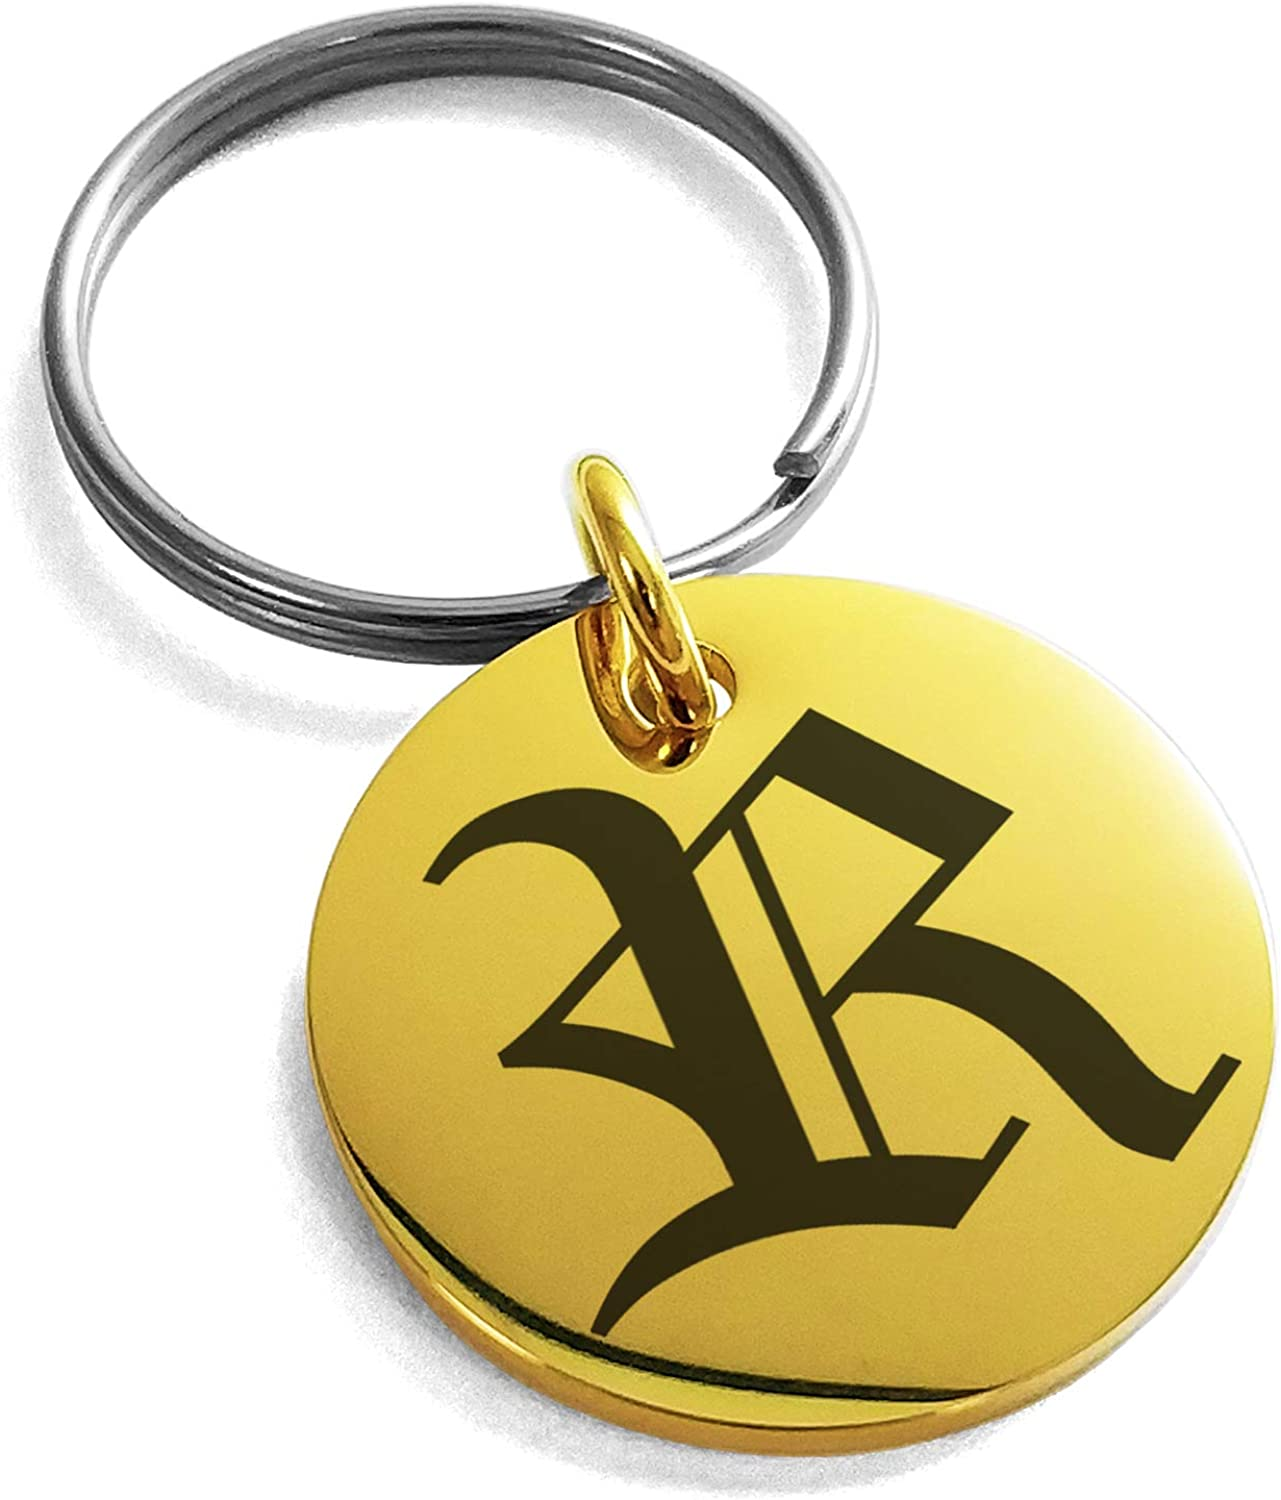 Tioneer Stainless Steel Letter R Initial Old English Monogram Small Medallion Circle Charm Keychain Keyring